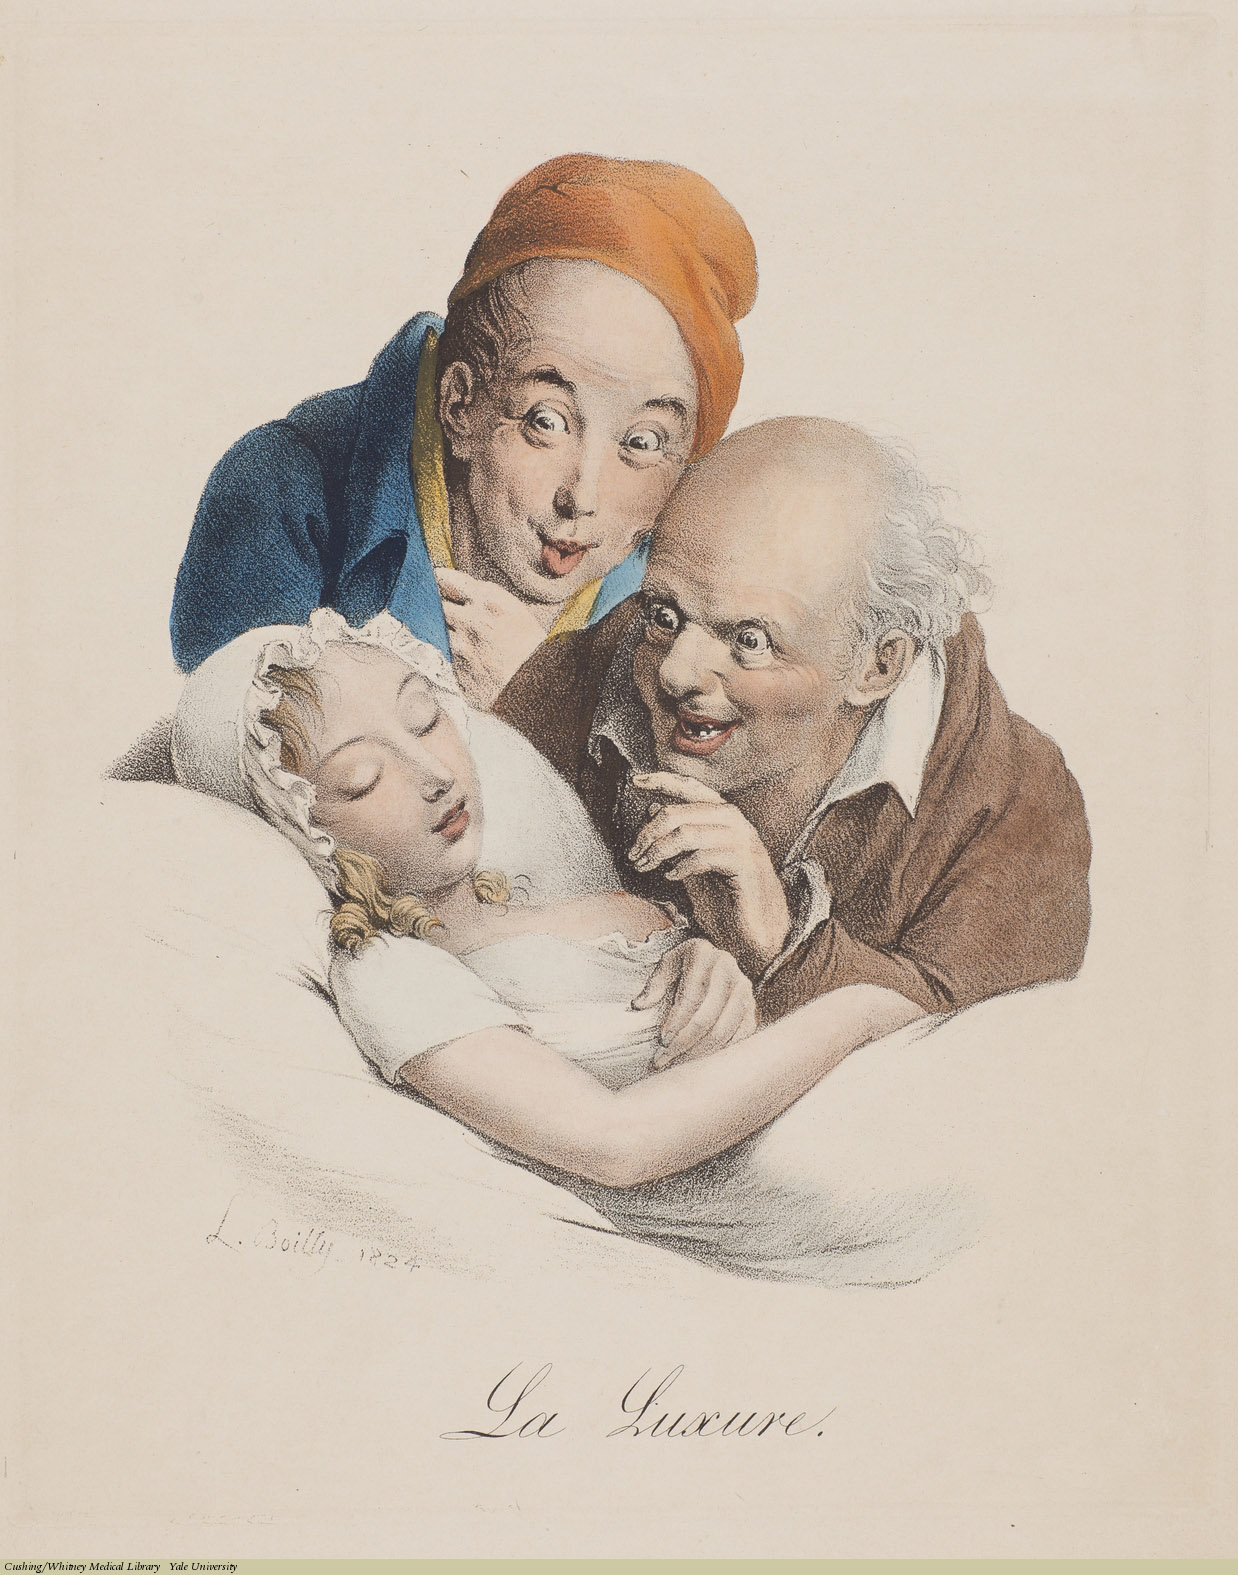 Louis-Léopold Boilly, La Luxure (Lechery), Lithograph, 1824.